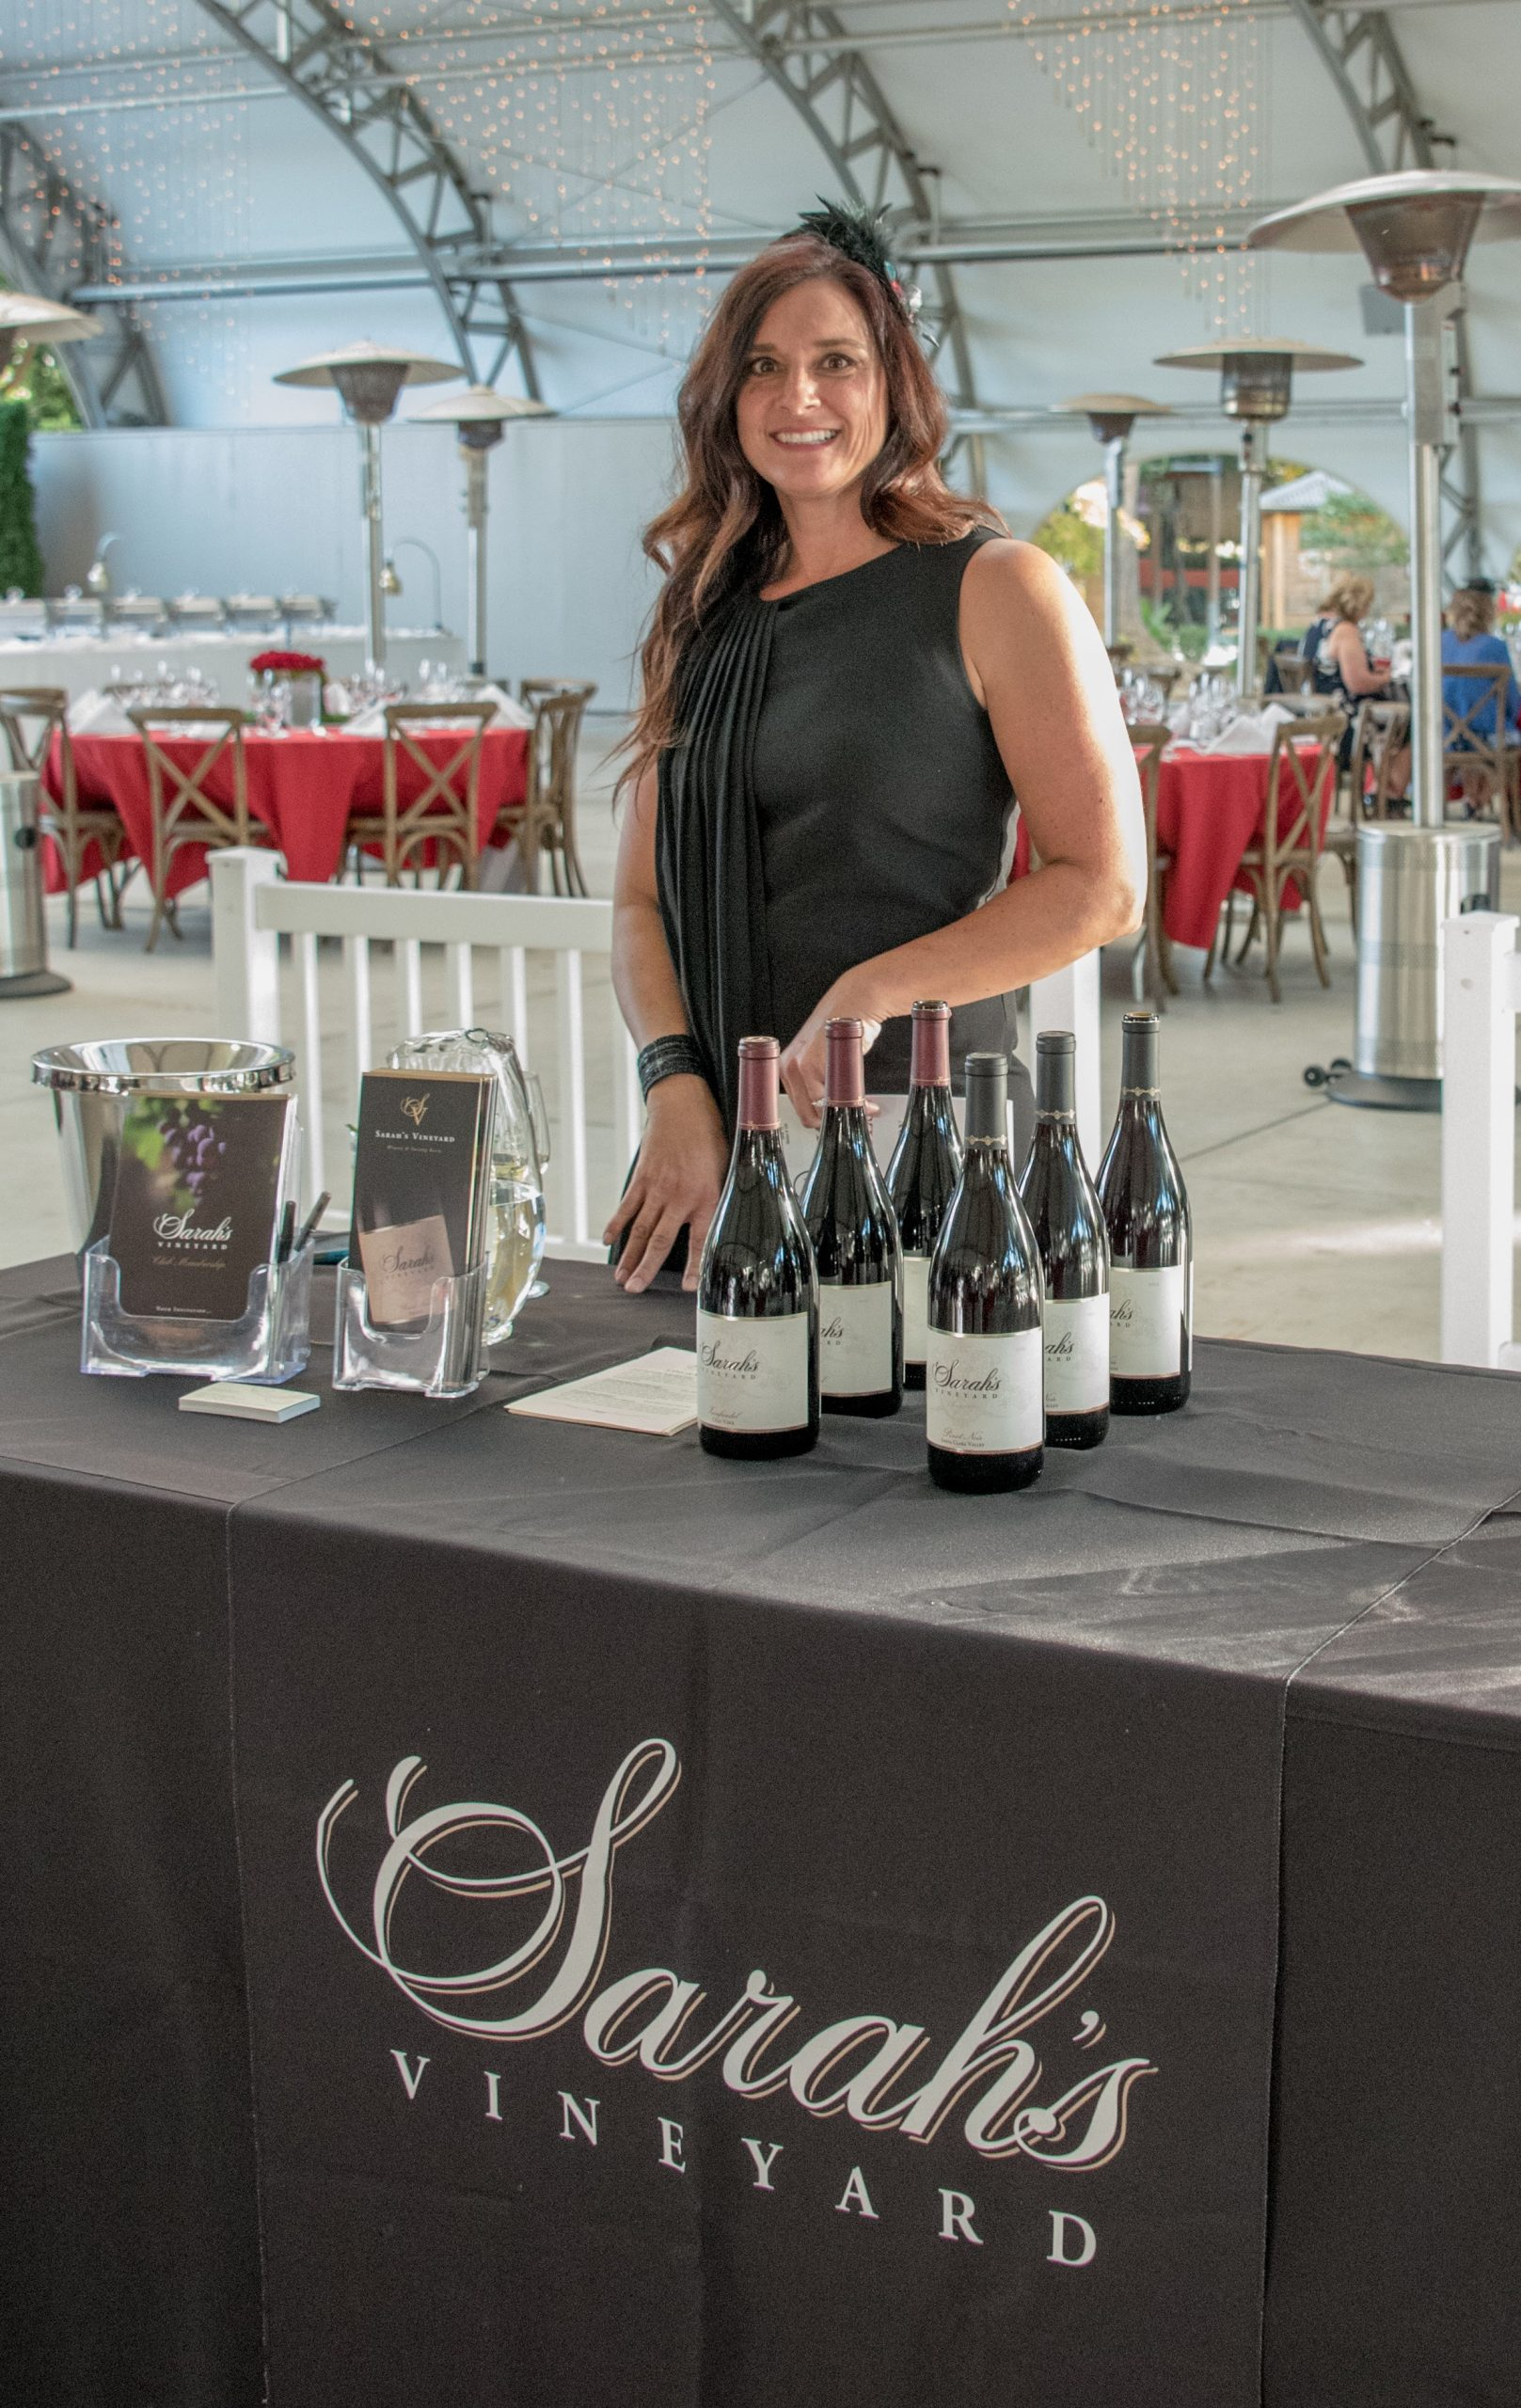 Photo of Stacy Romero-Garcia behind the Sarah's Vineyard wine tasting table at